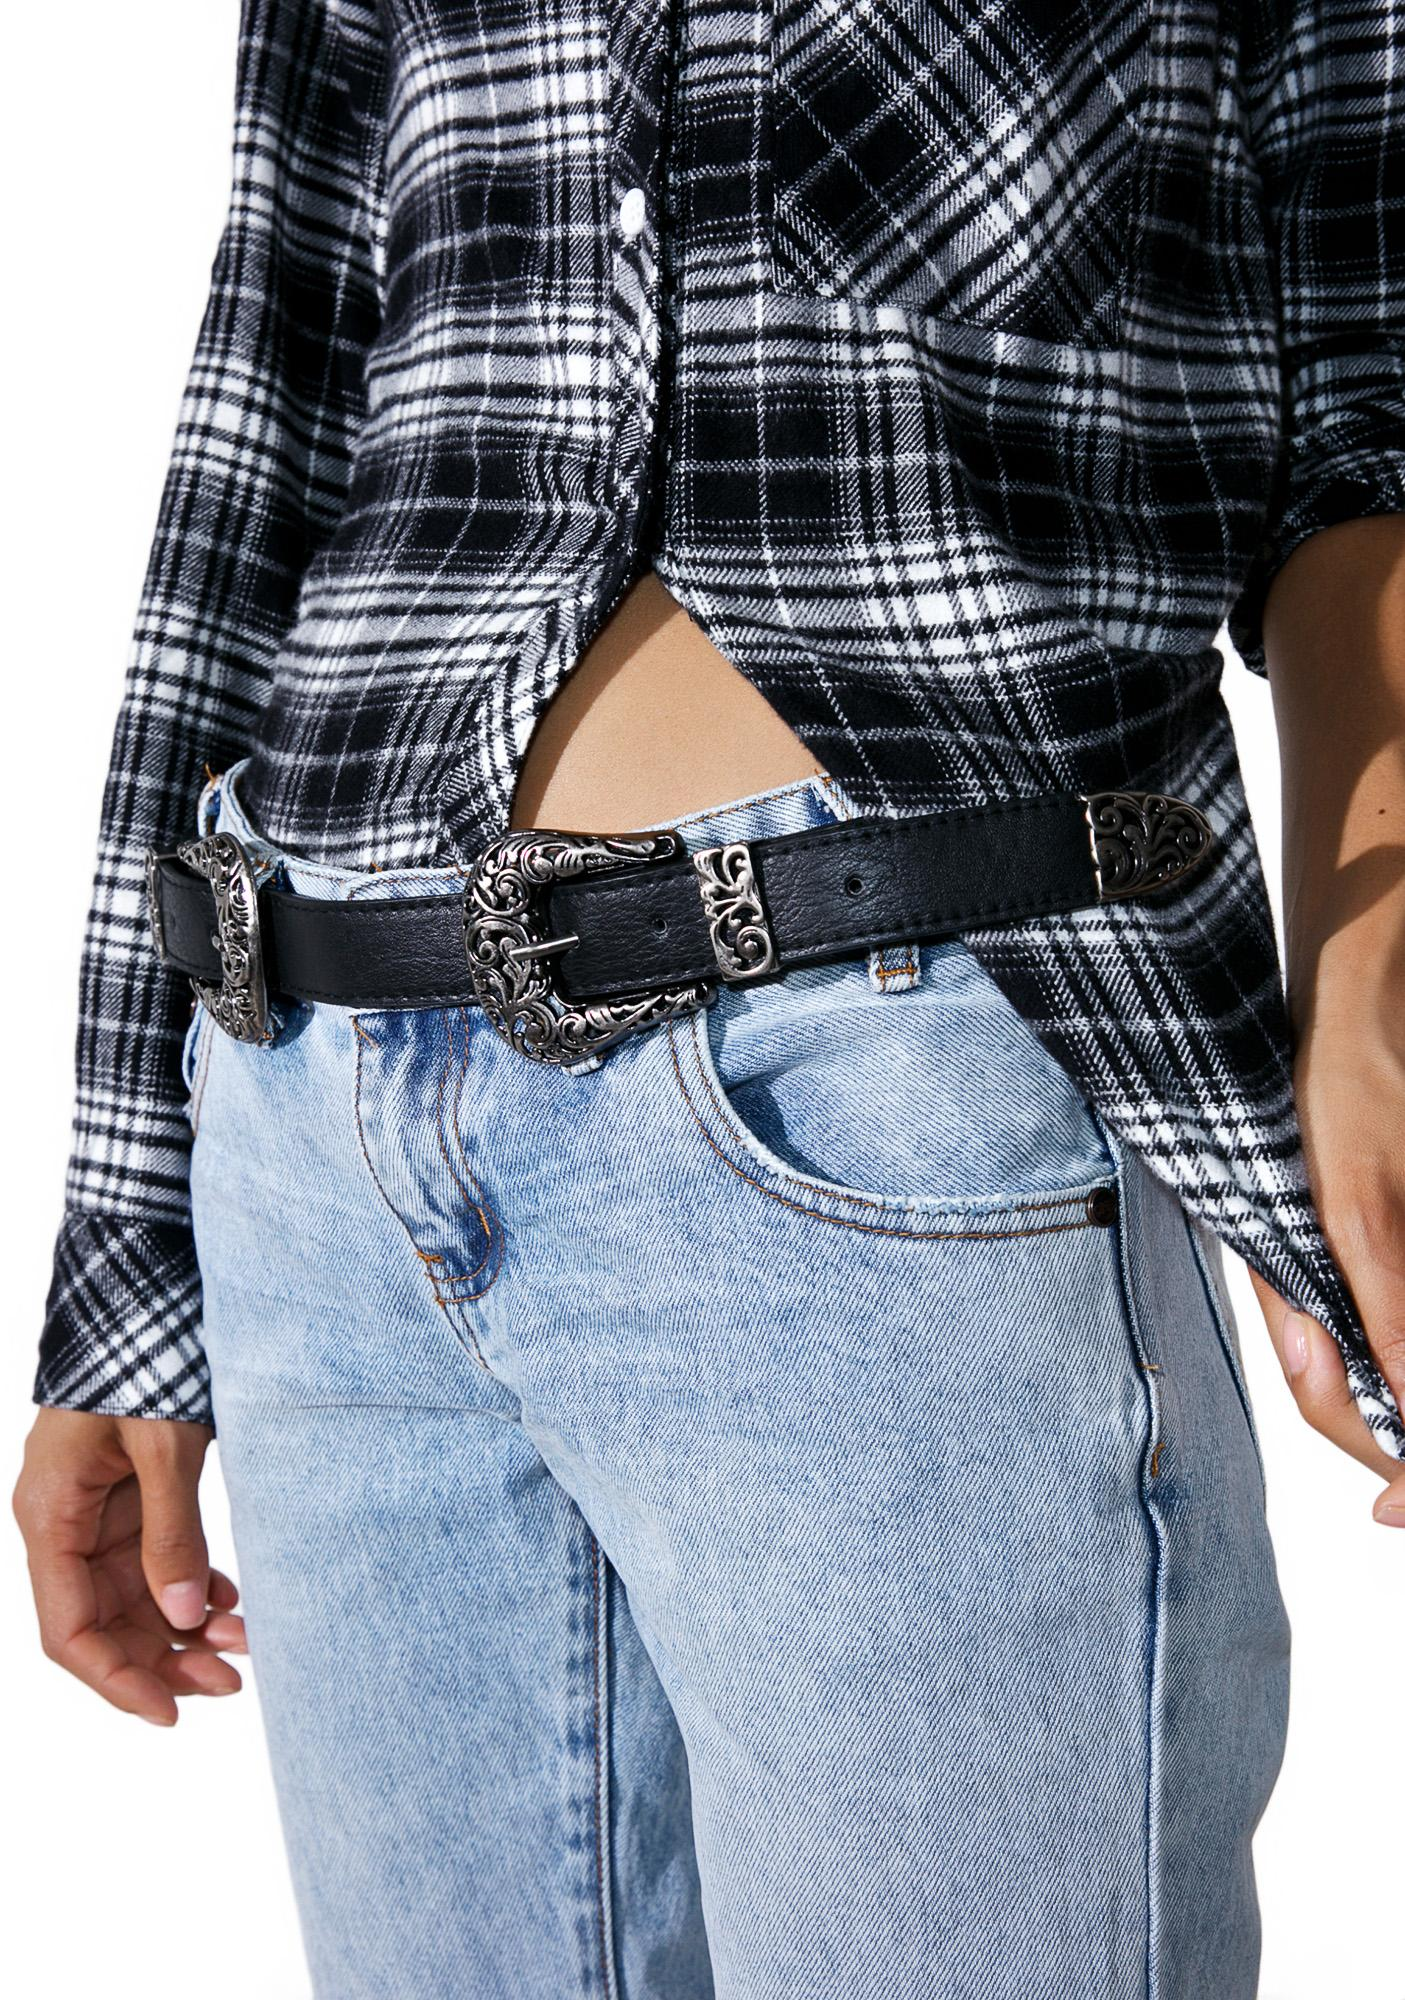 Revolver Double Buckle Belt